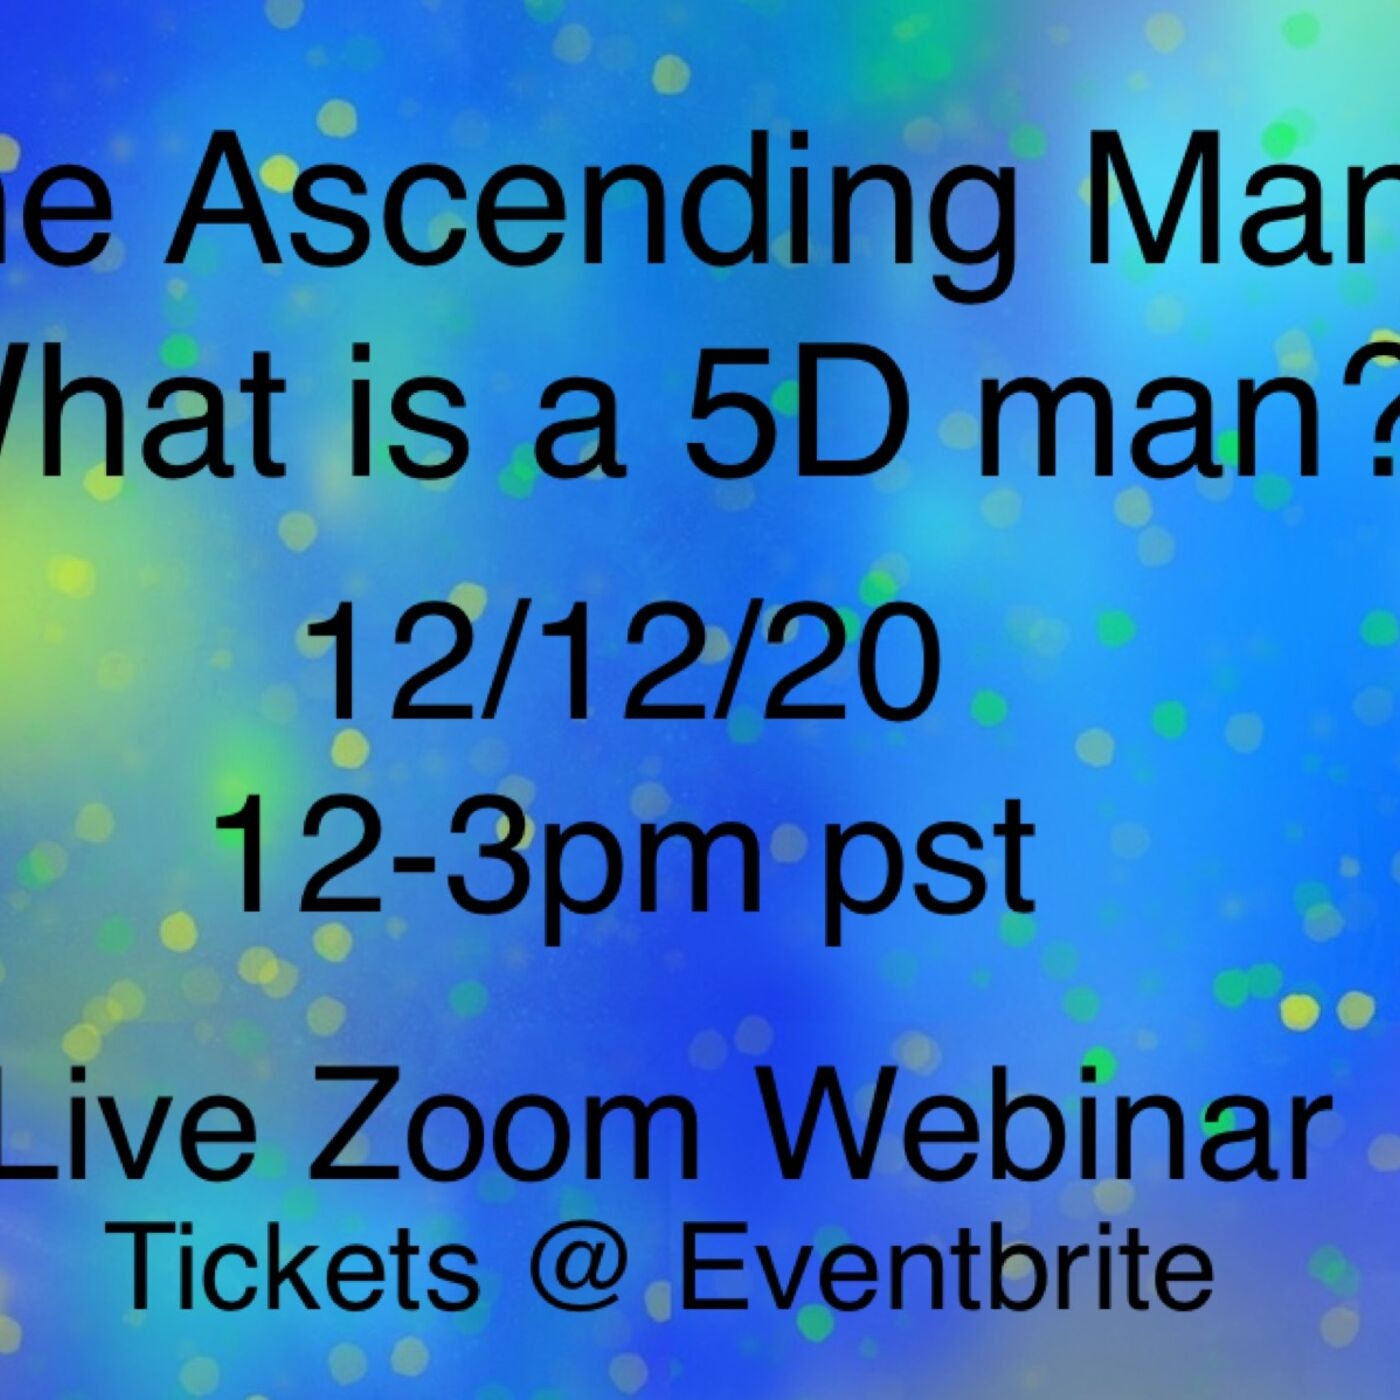 """The Ascending Man"", What is a 5D man, Webinar Promo"